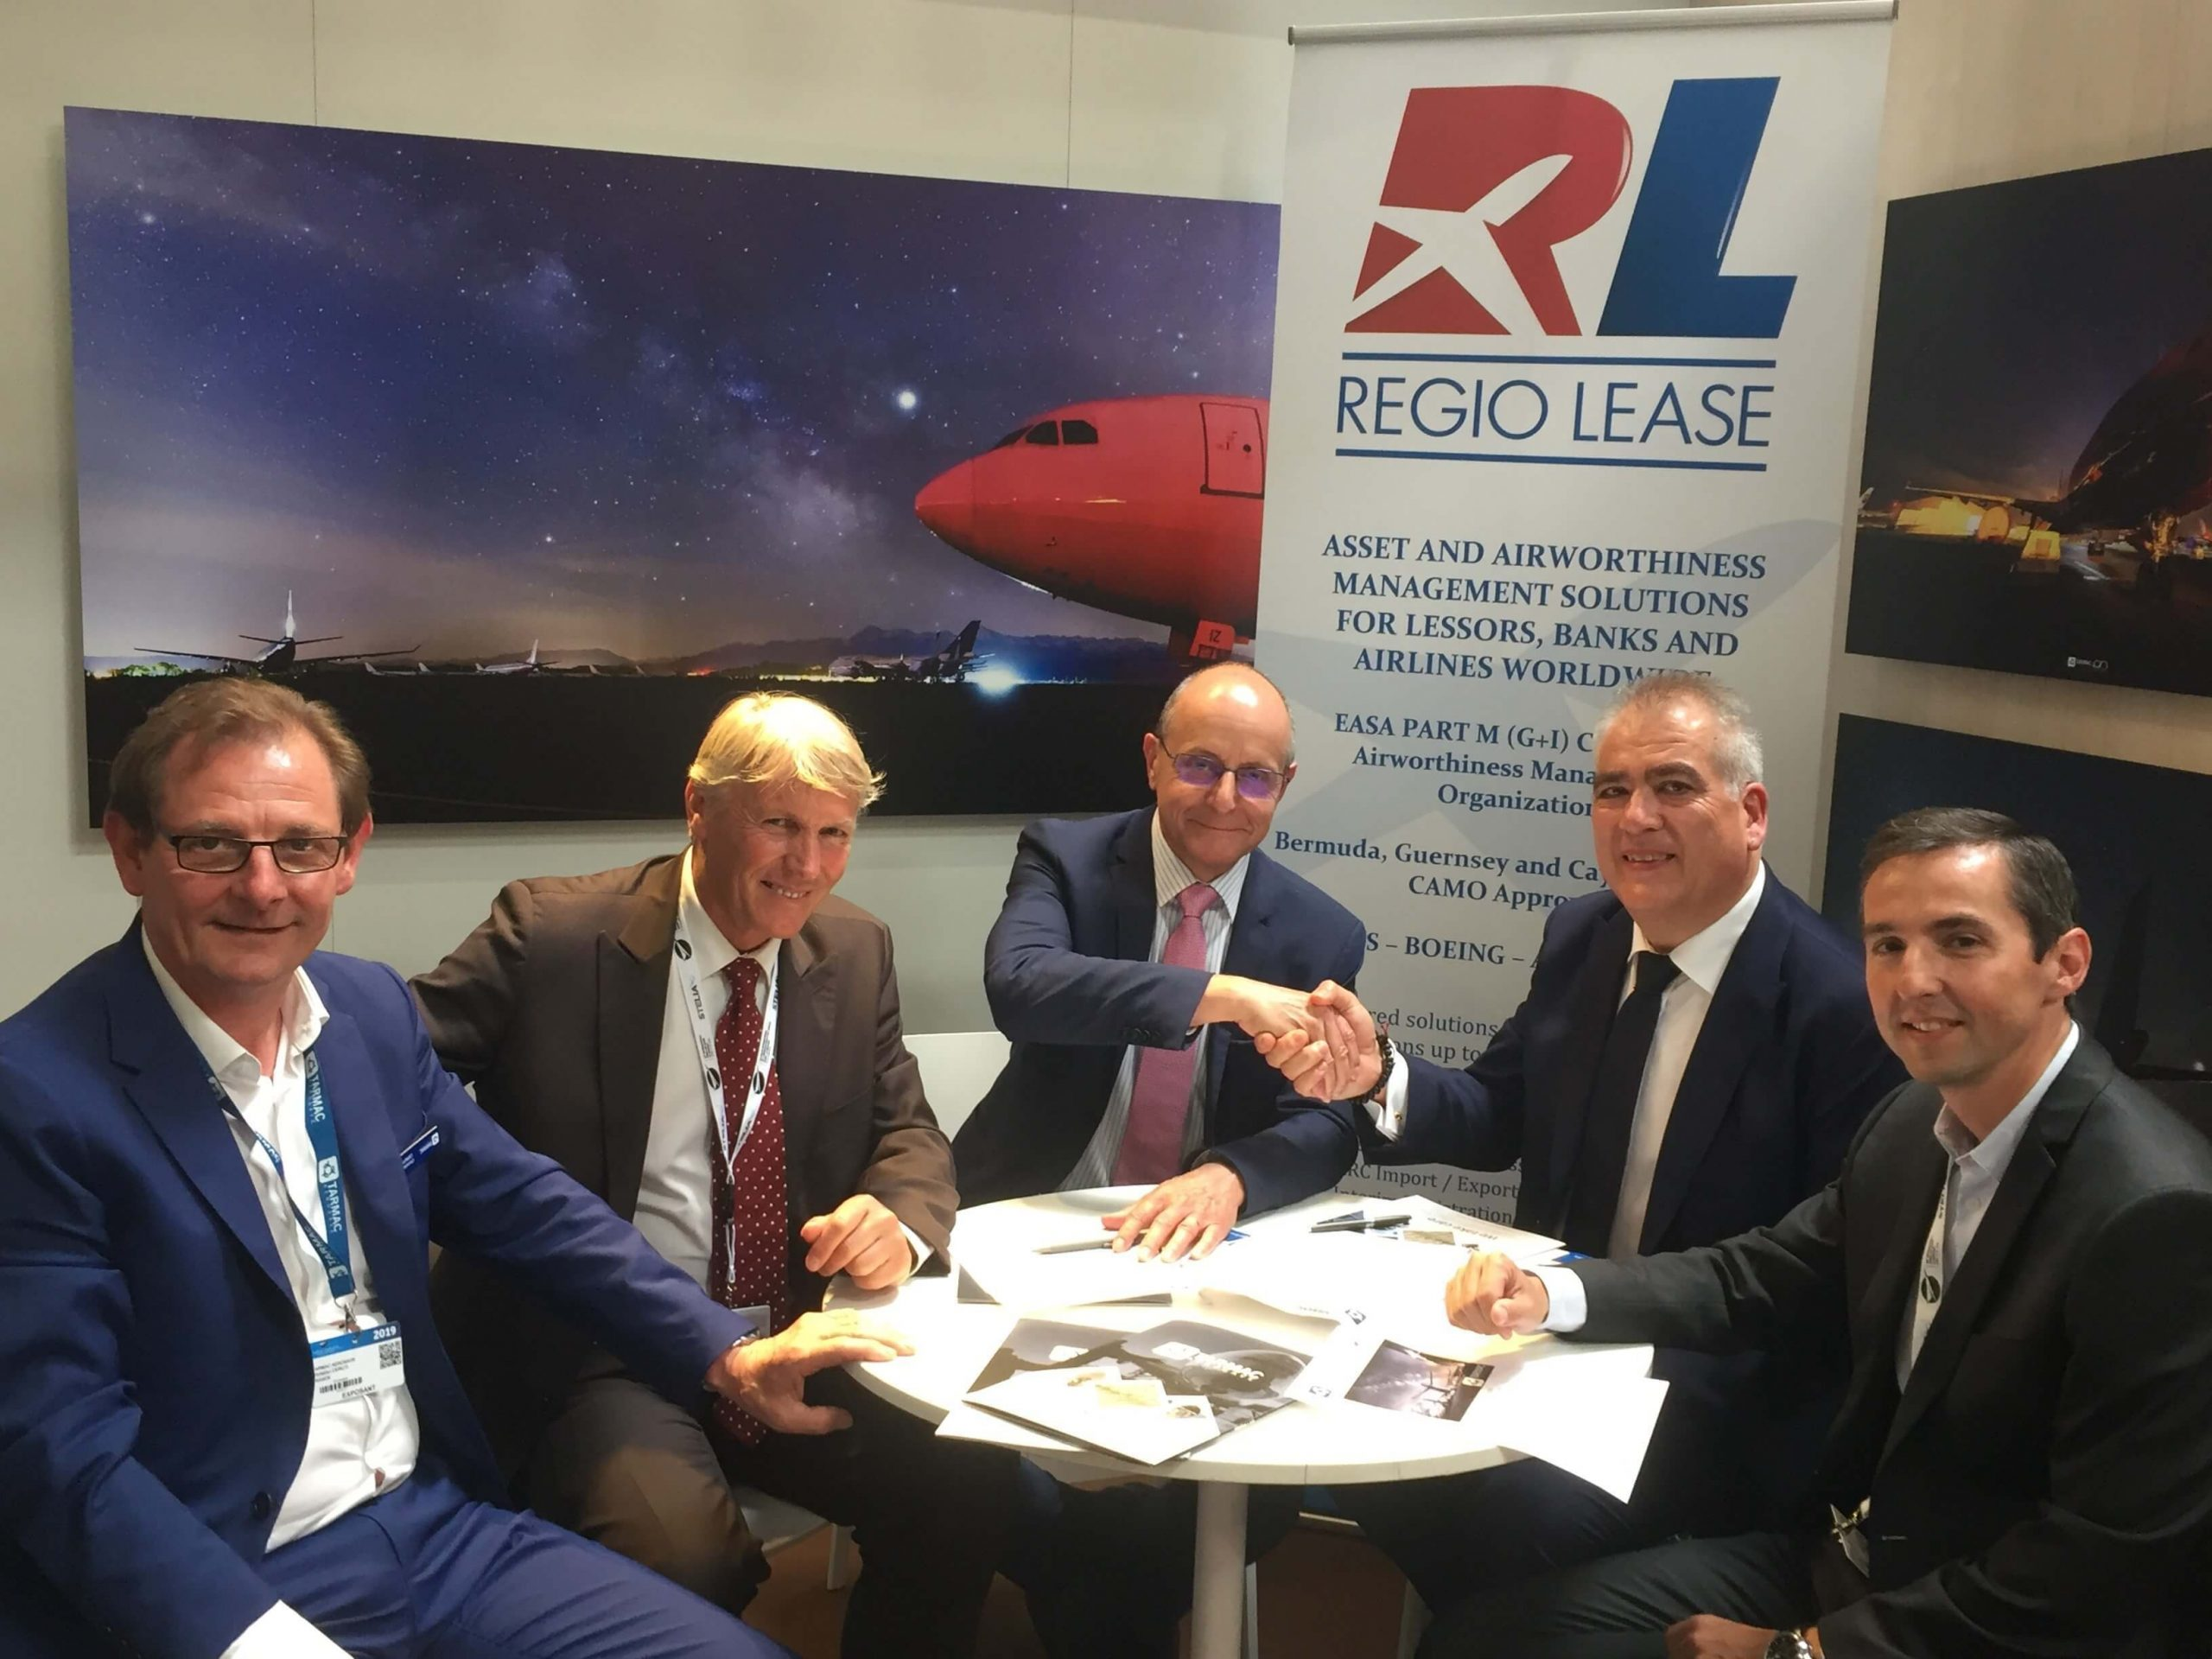 Tarmac Aerosave partners with Regio Lease on aircraft transitions